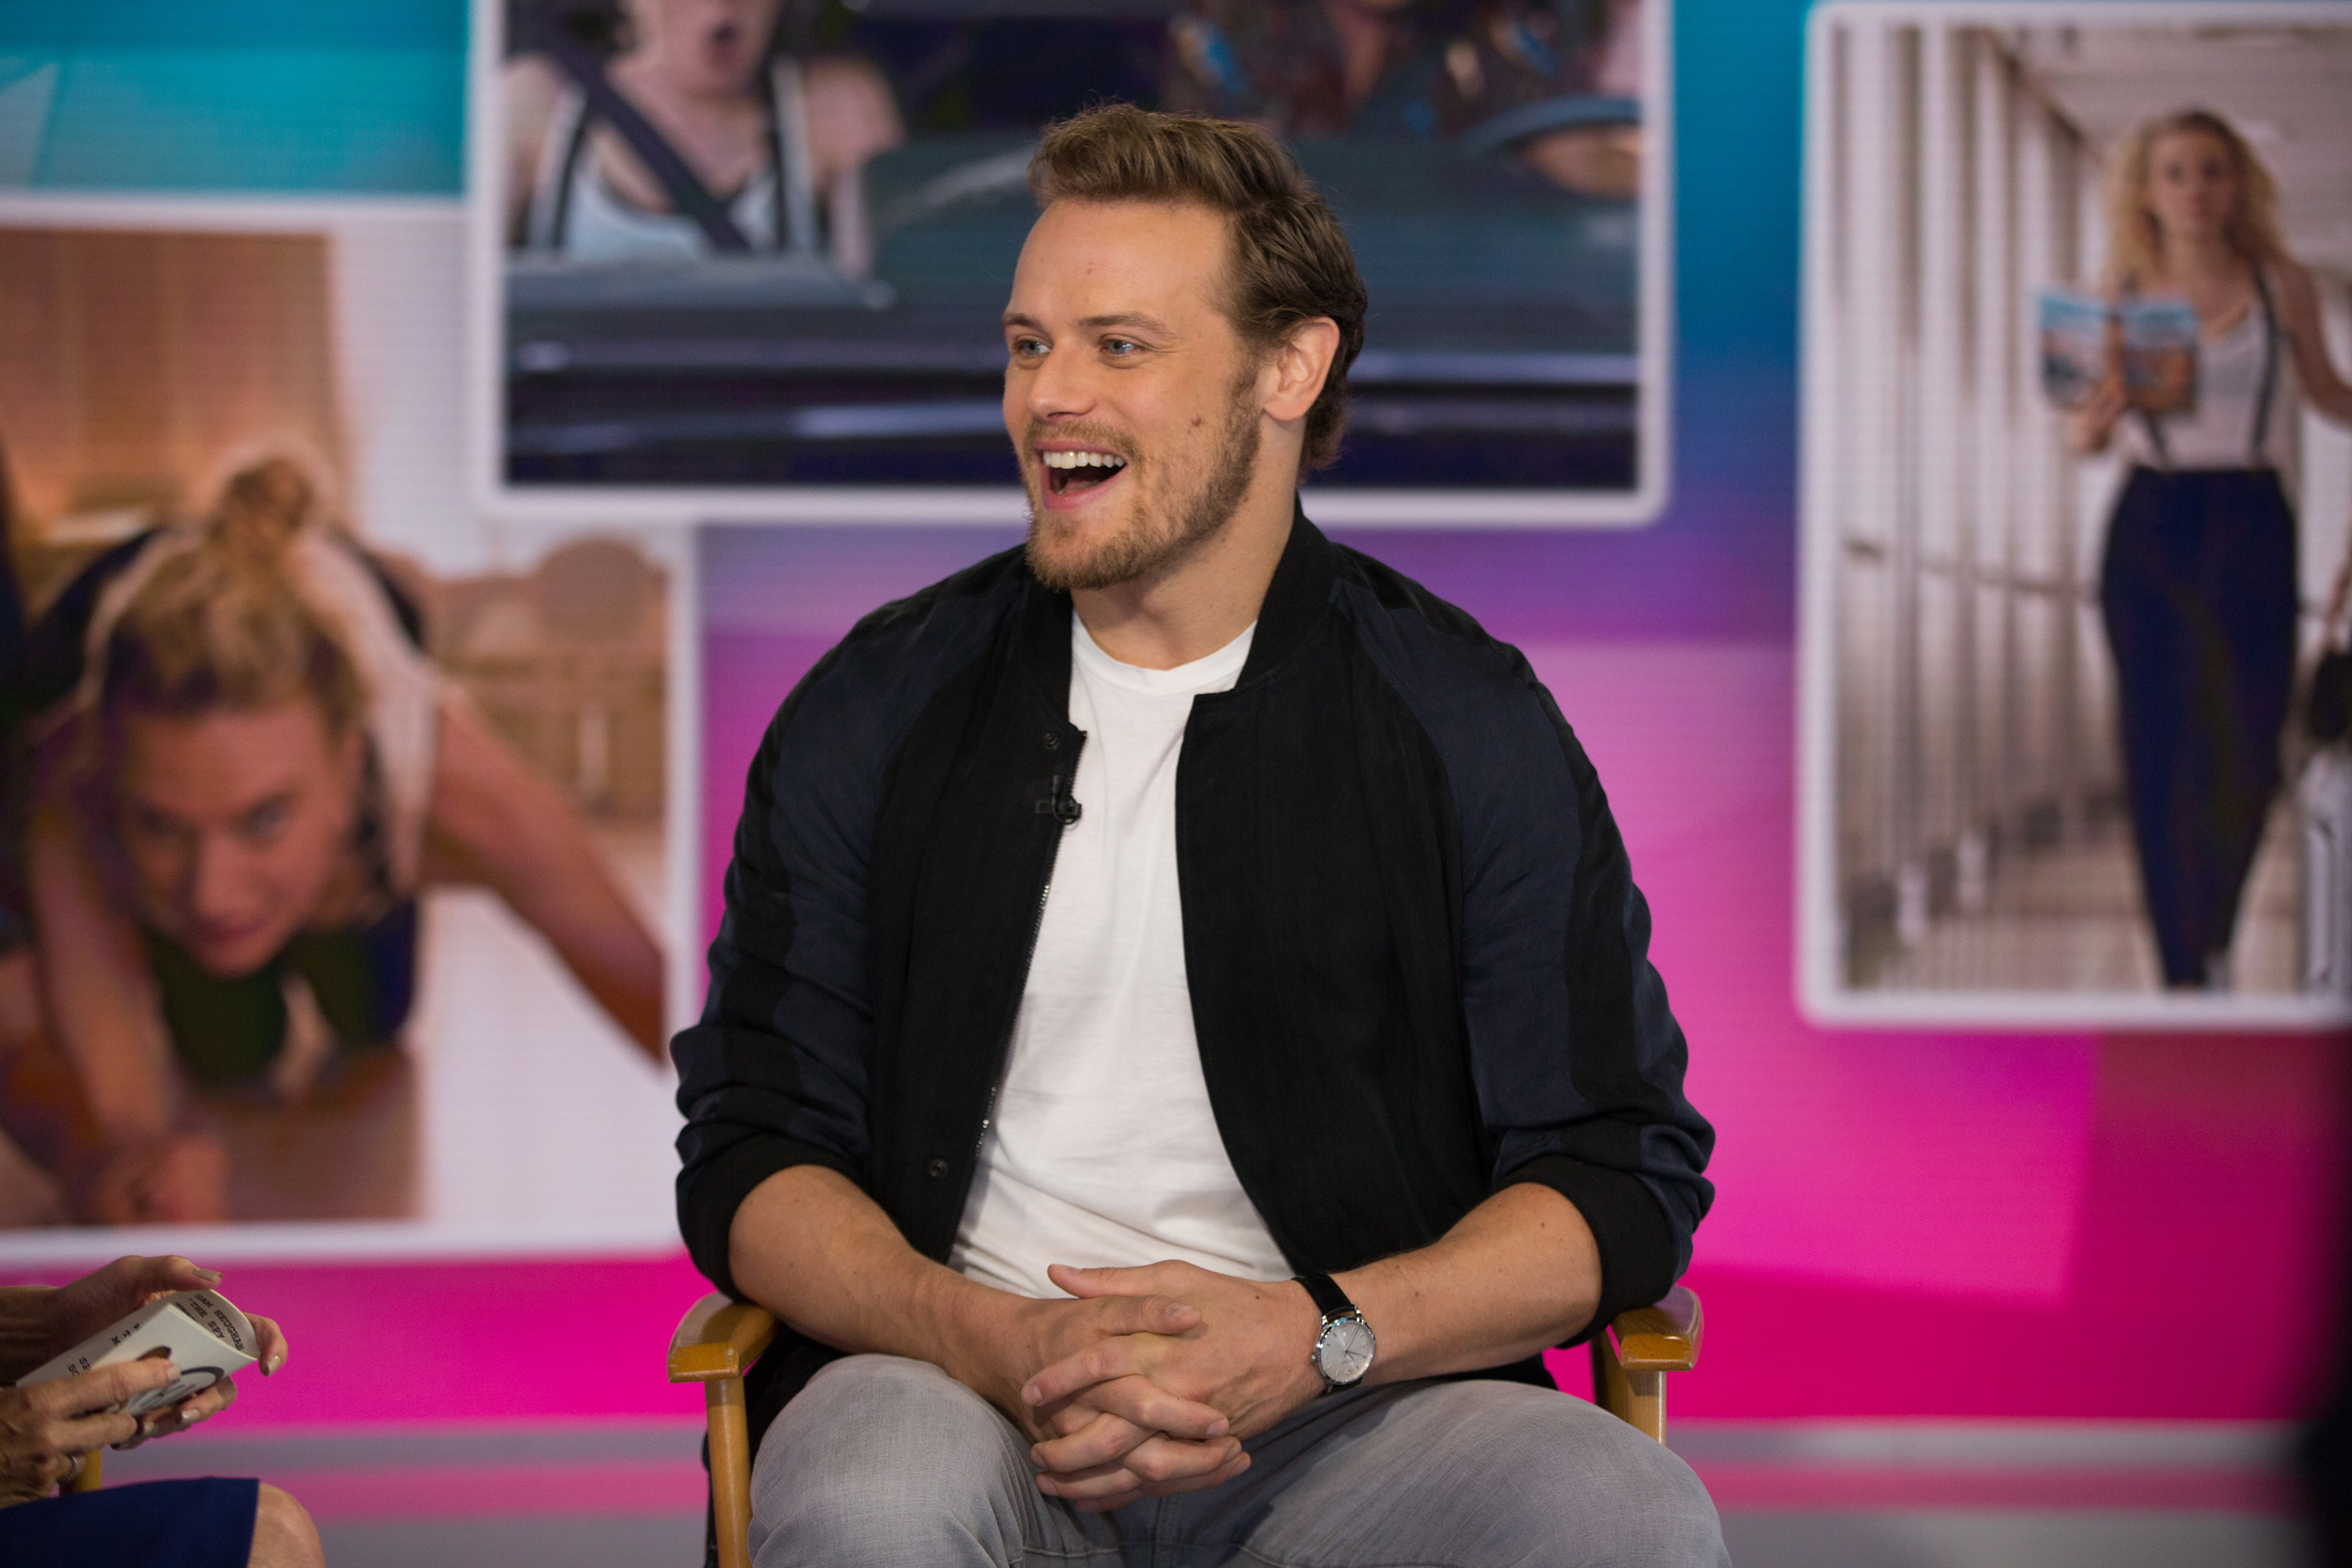 New* HQ Pics of Sam Heughan on Today With Kathy Lee & Hoda – July